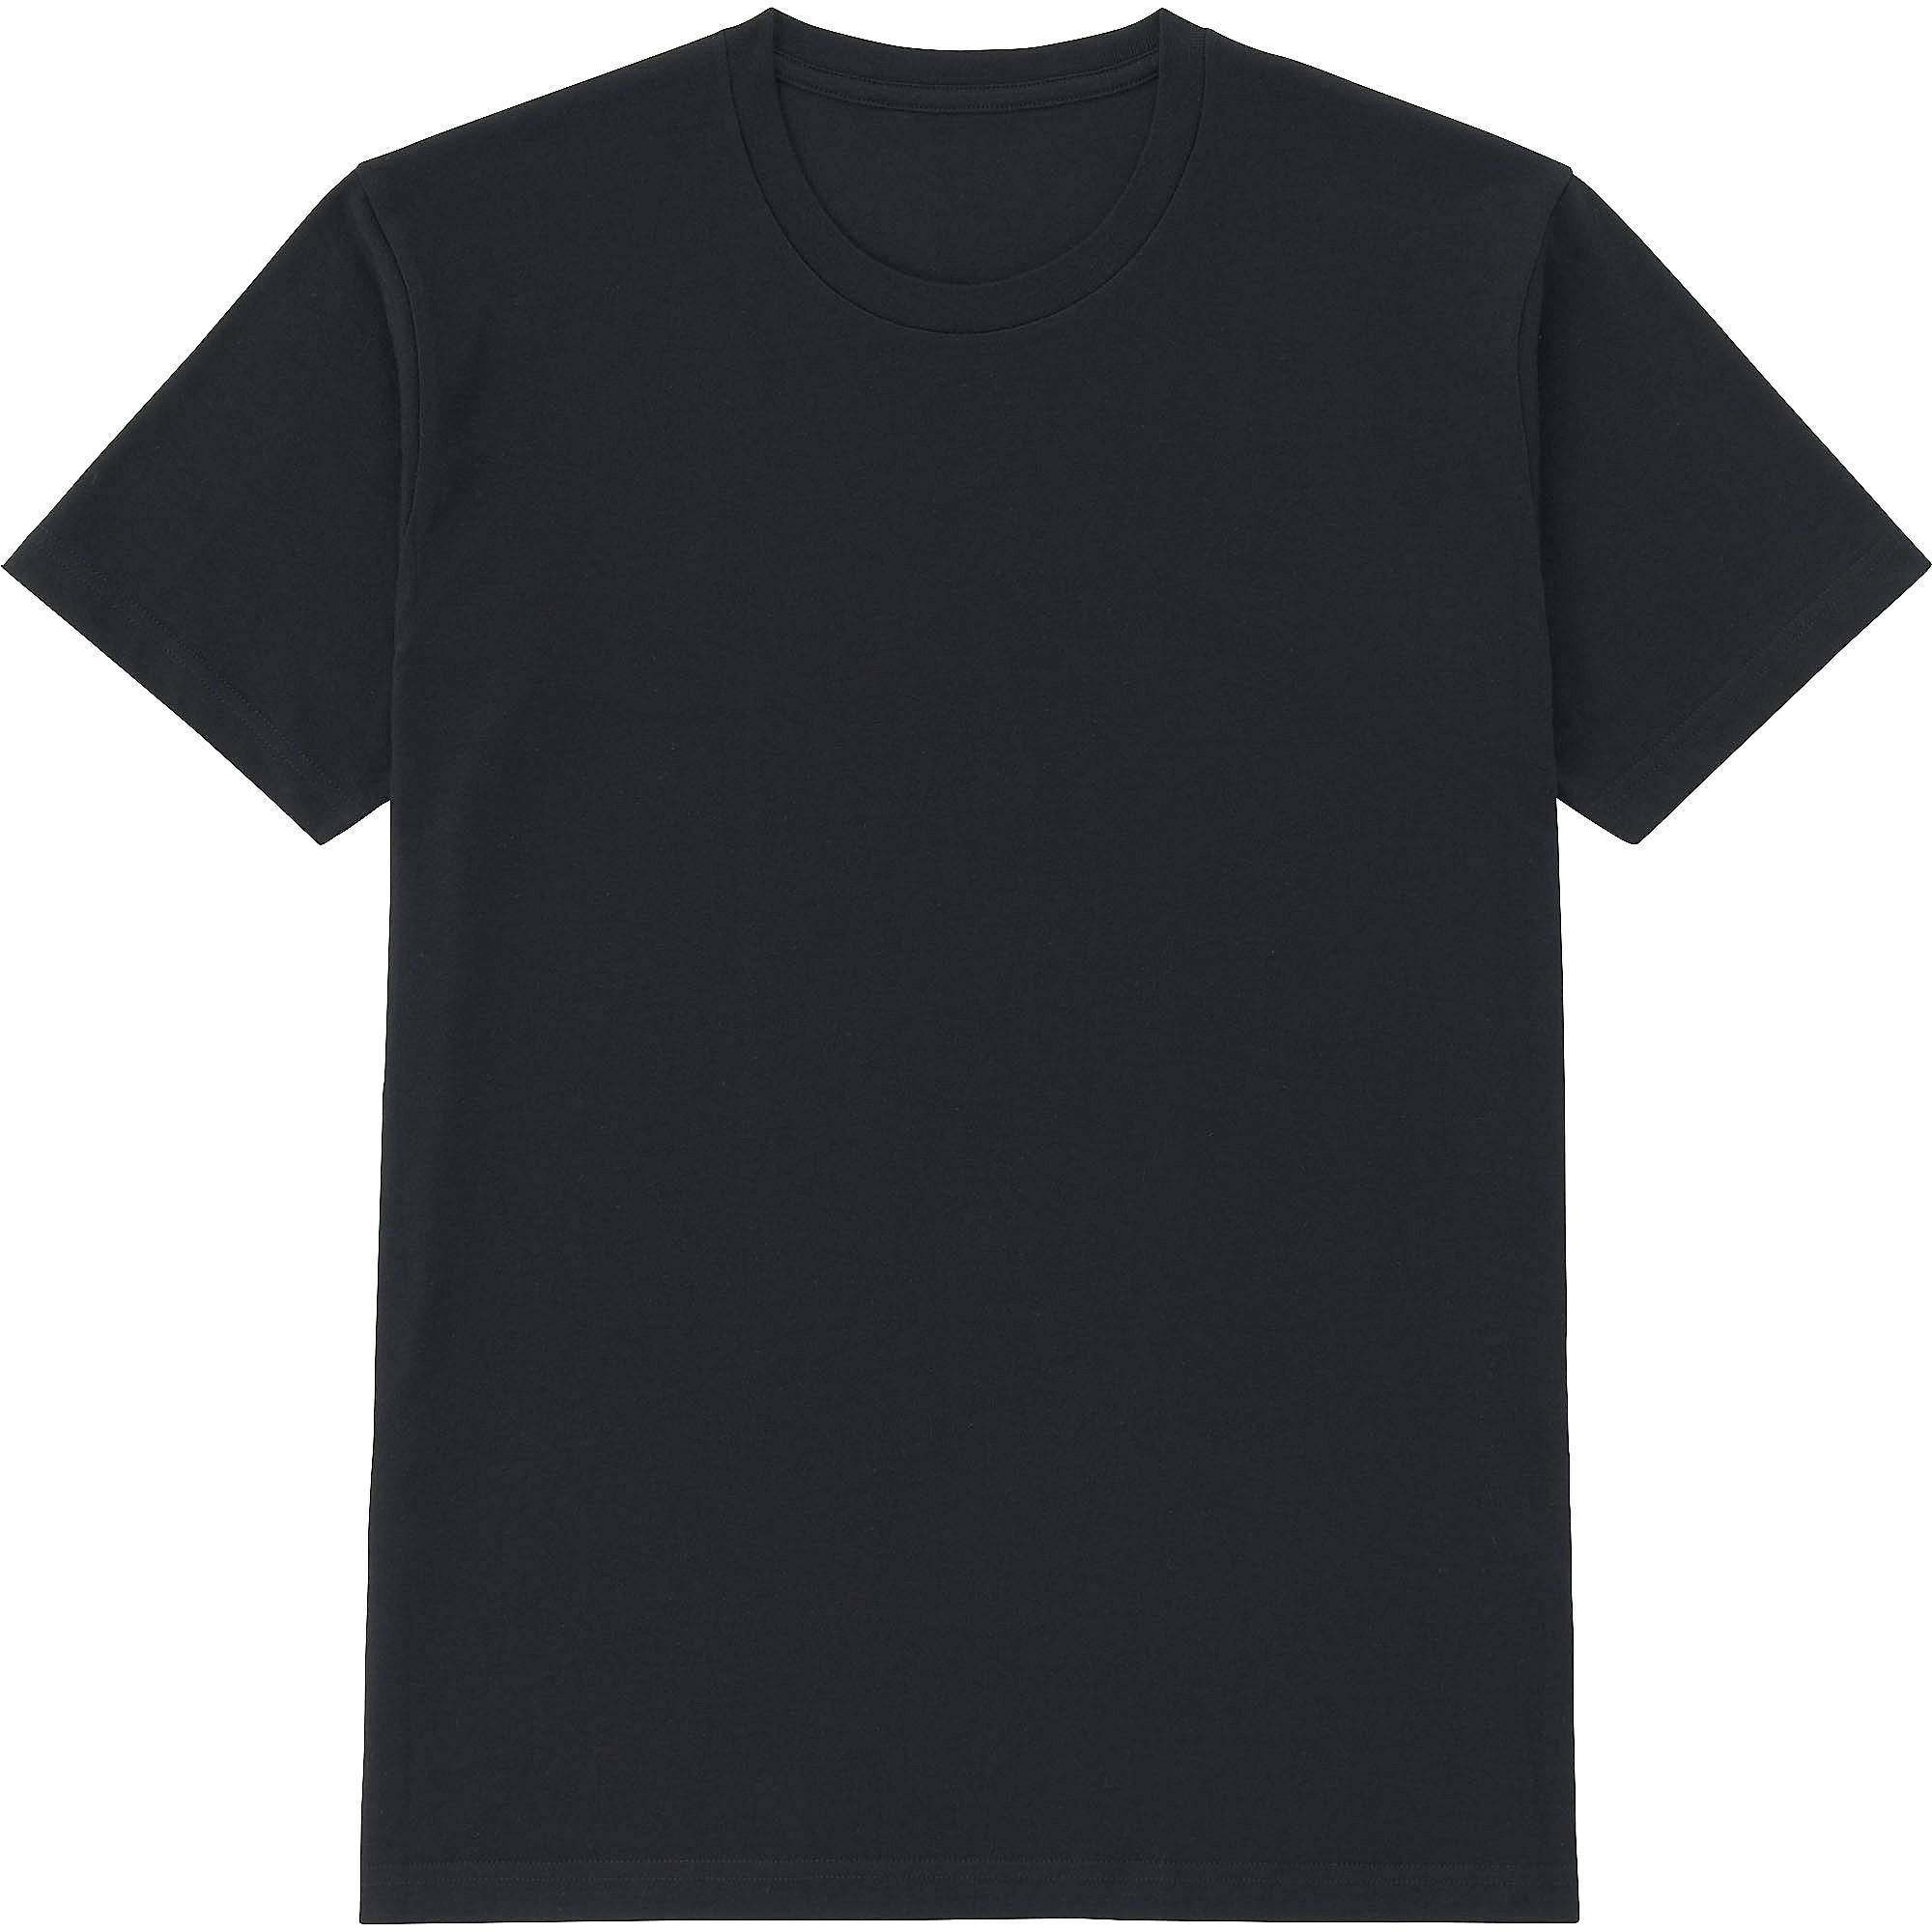 Black Crew Neck T Shirt